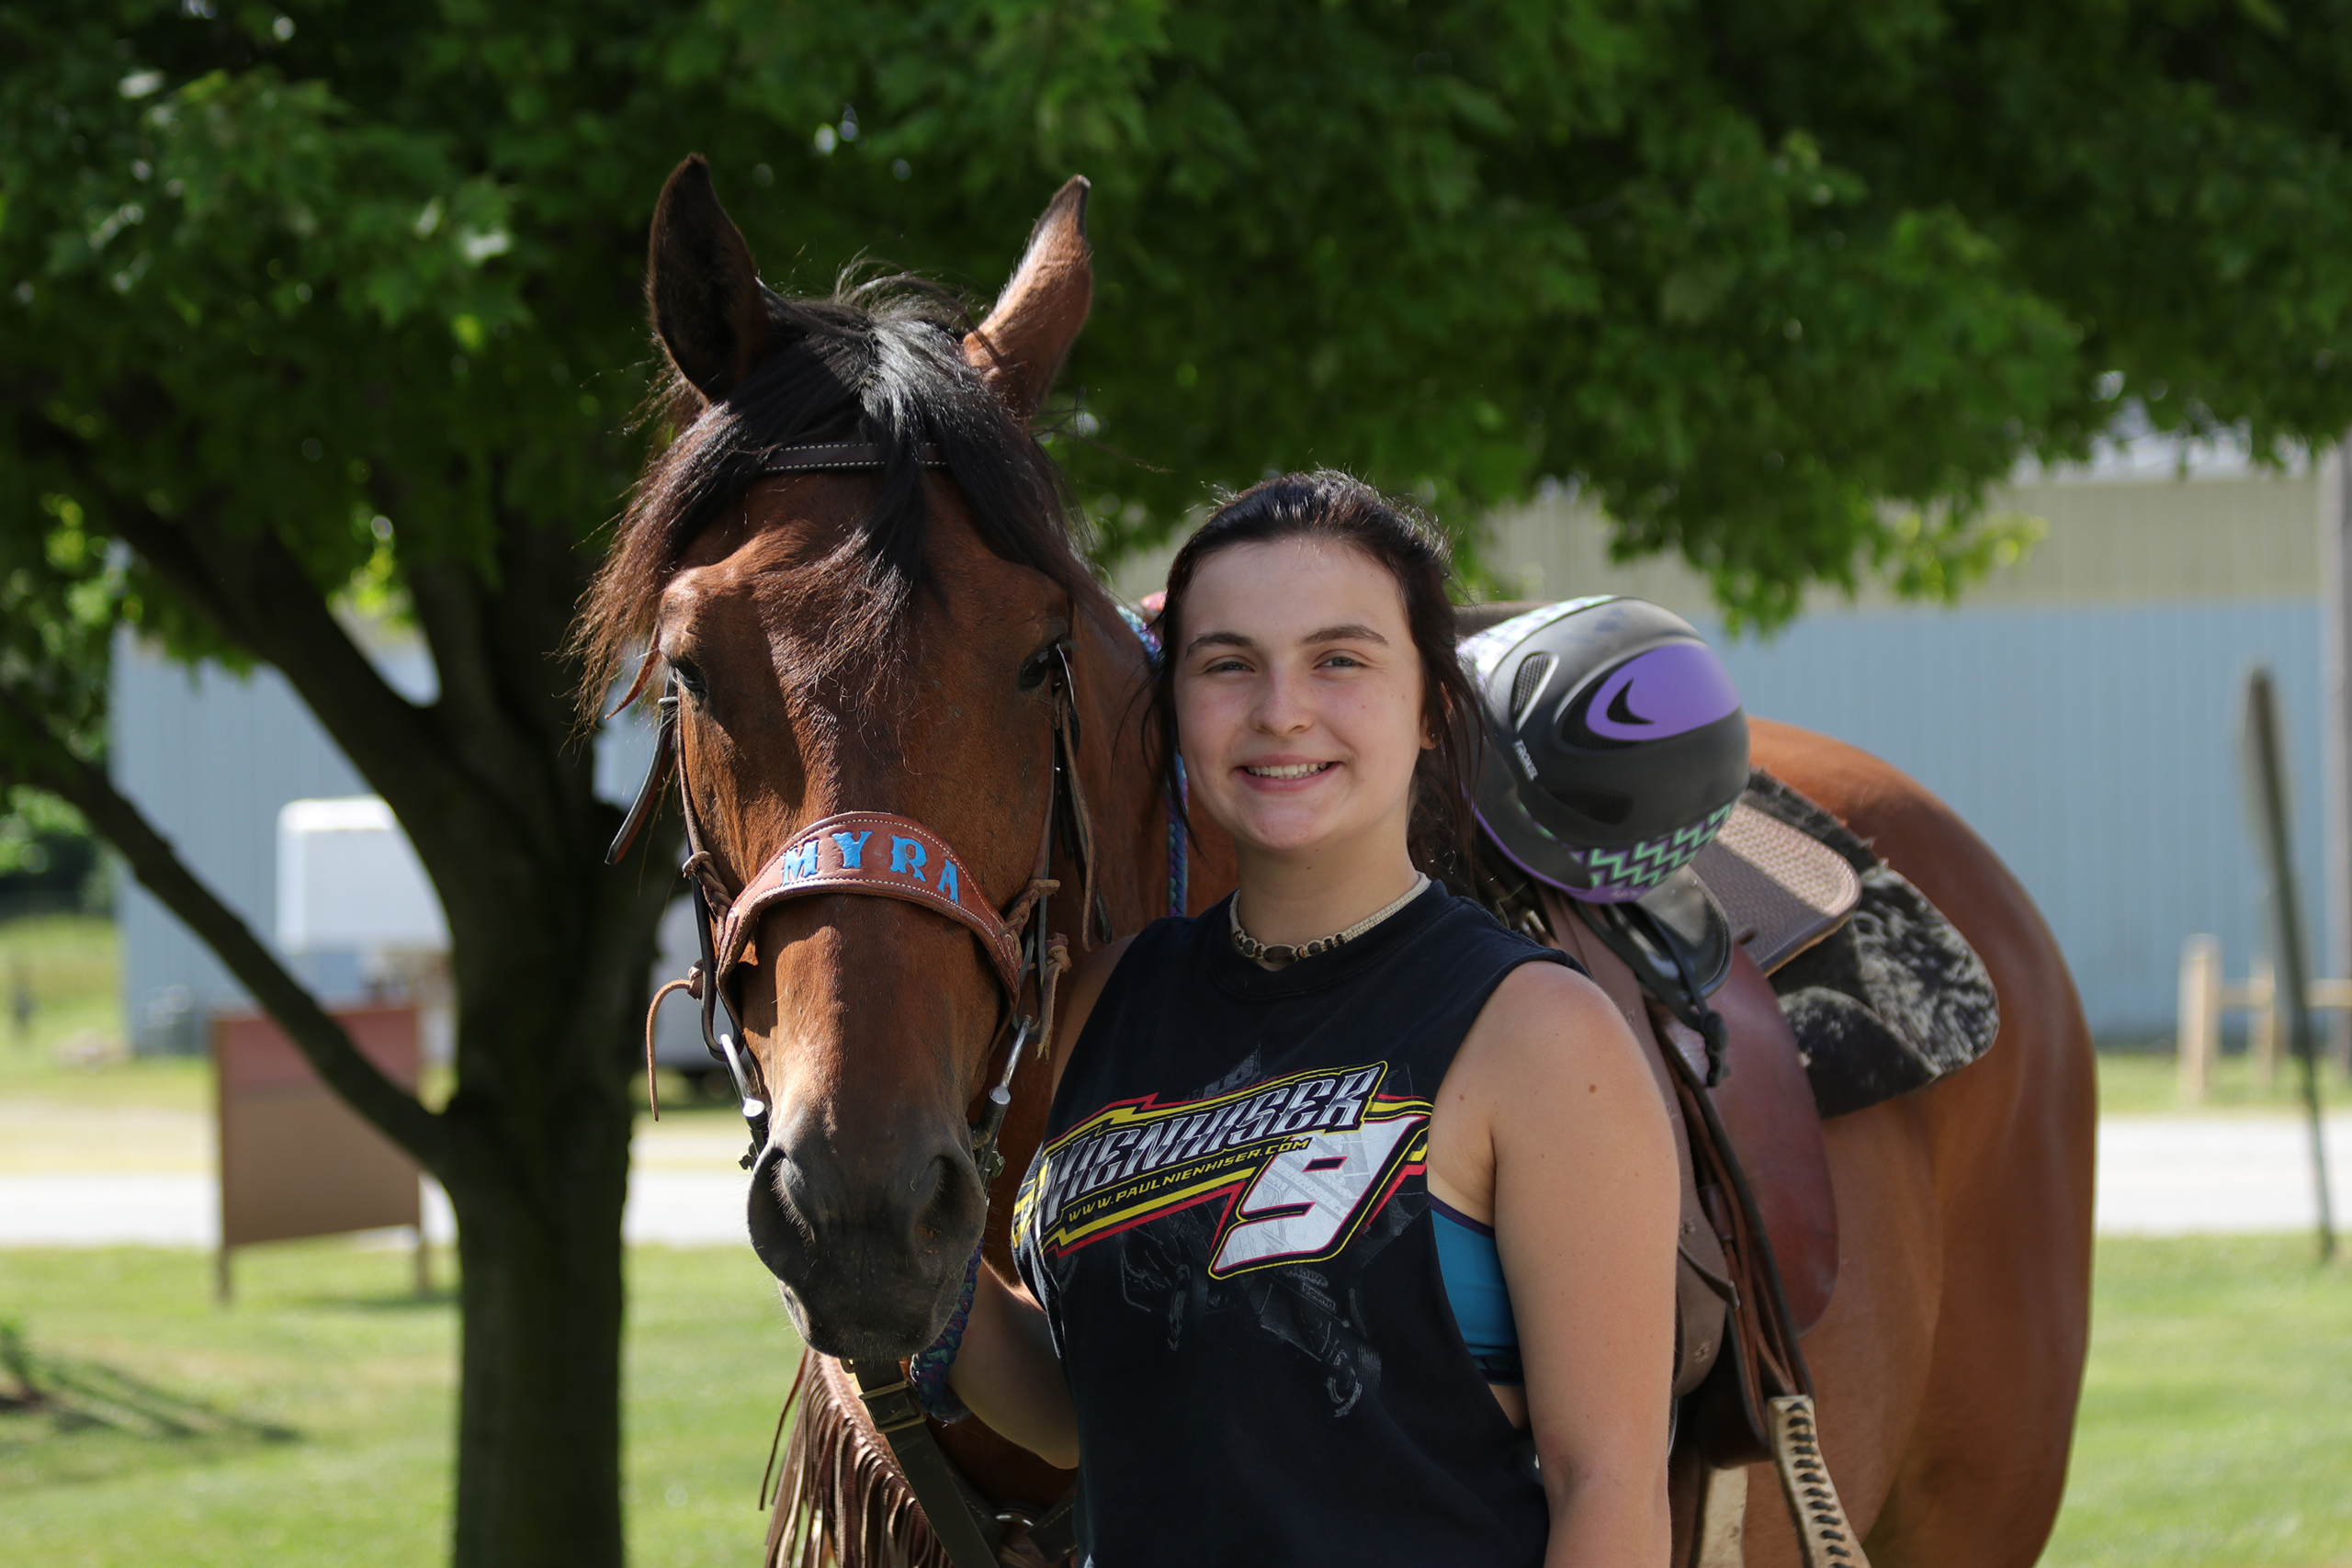 female camper standing with her horse